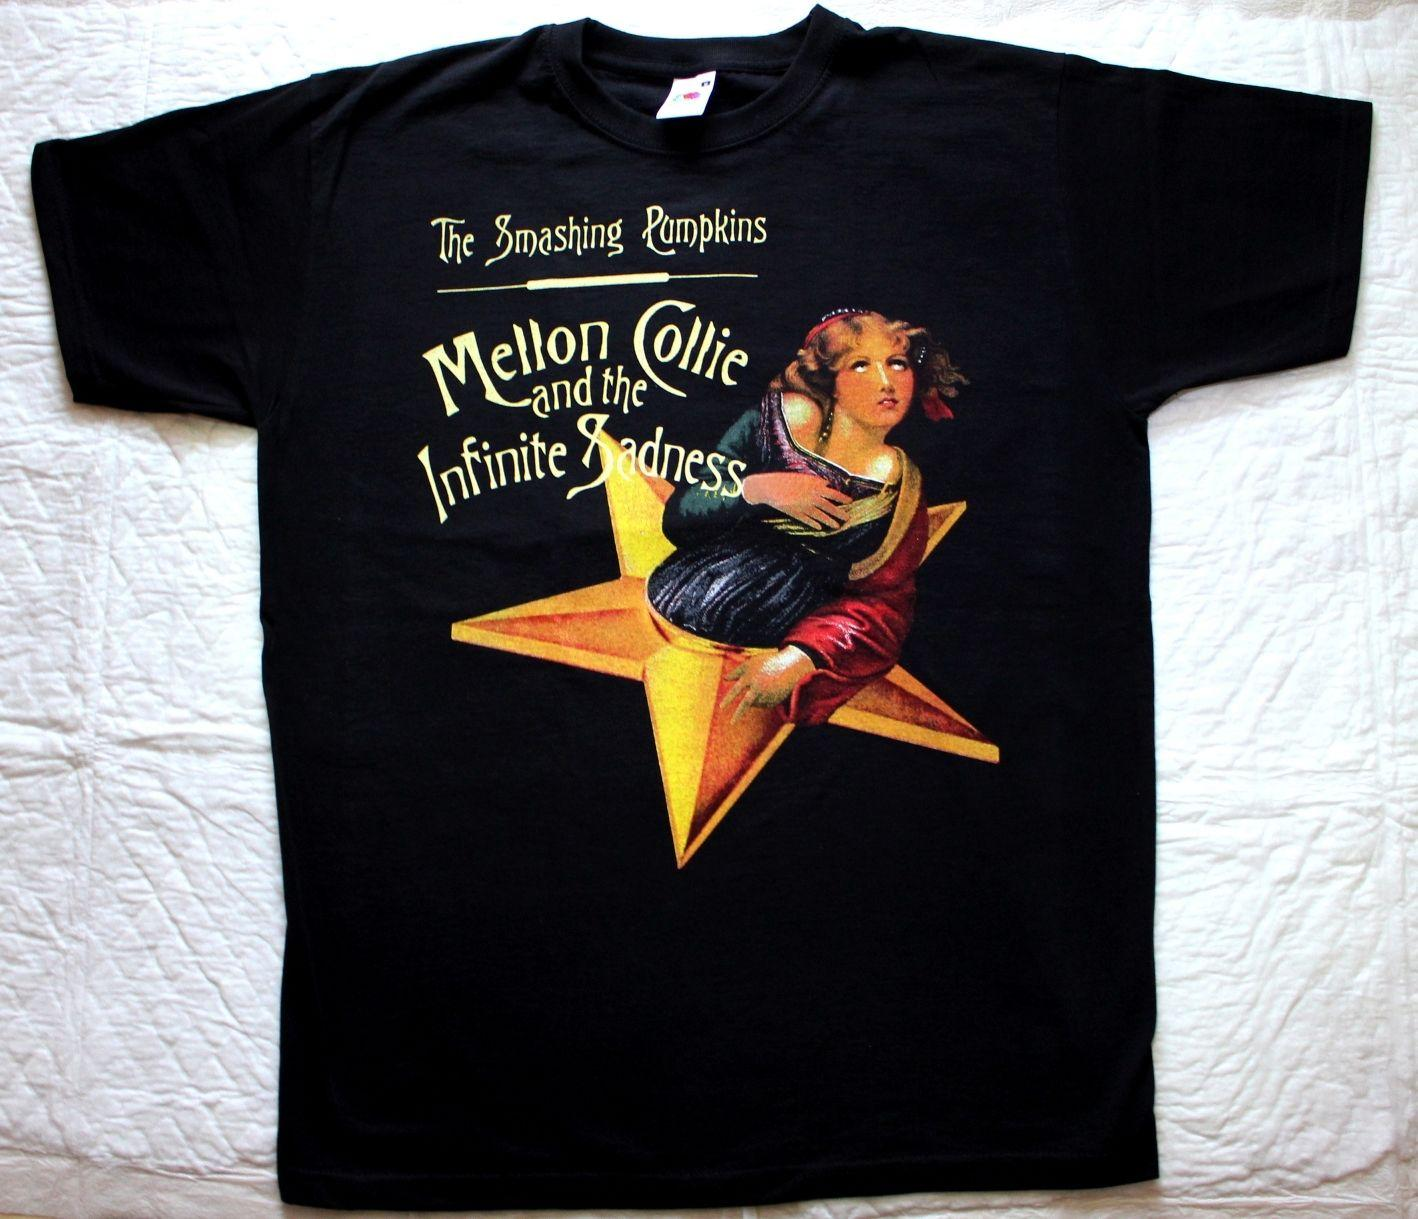 THE SMASHING PUMPKINS MELLON COLLIE AND THE INFINITE SADNESS NEW BLACK T-SHIRT Tees Custom Jersey t shirt